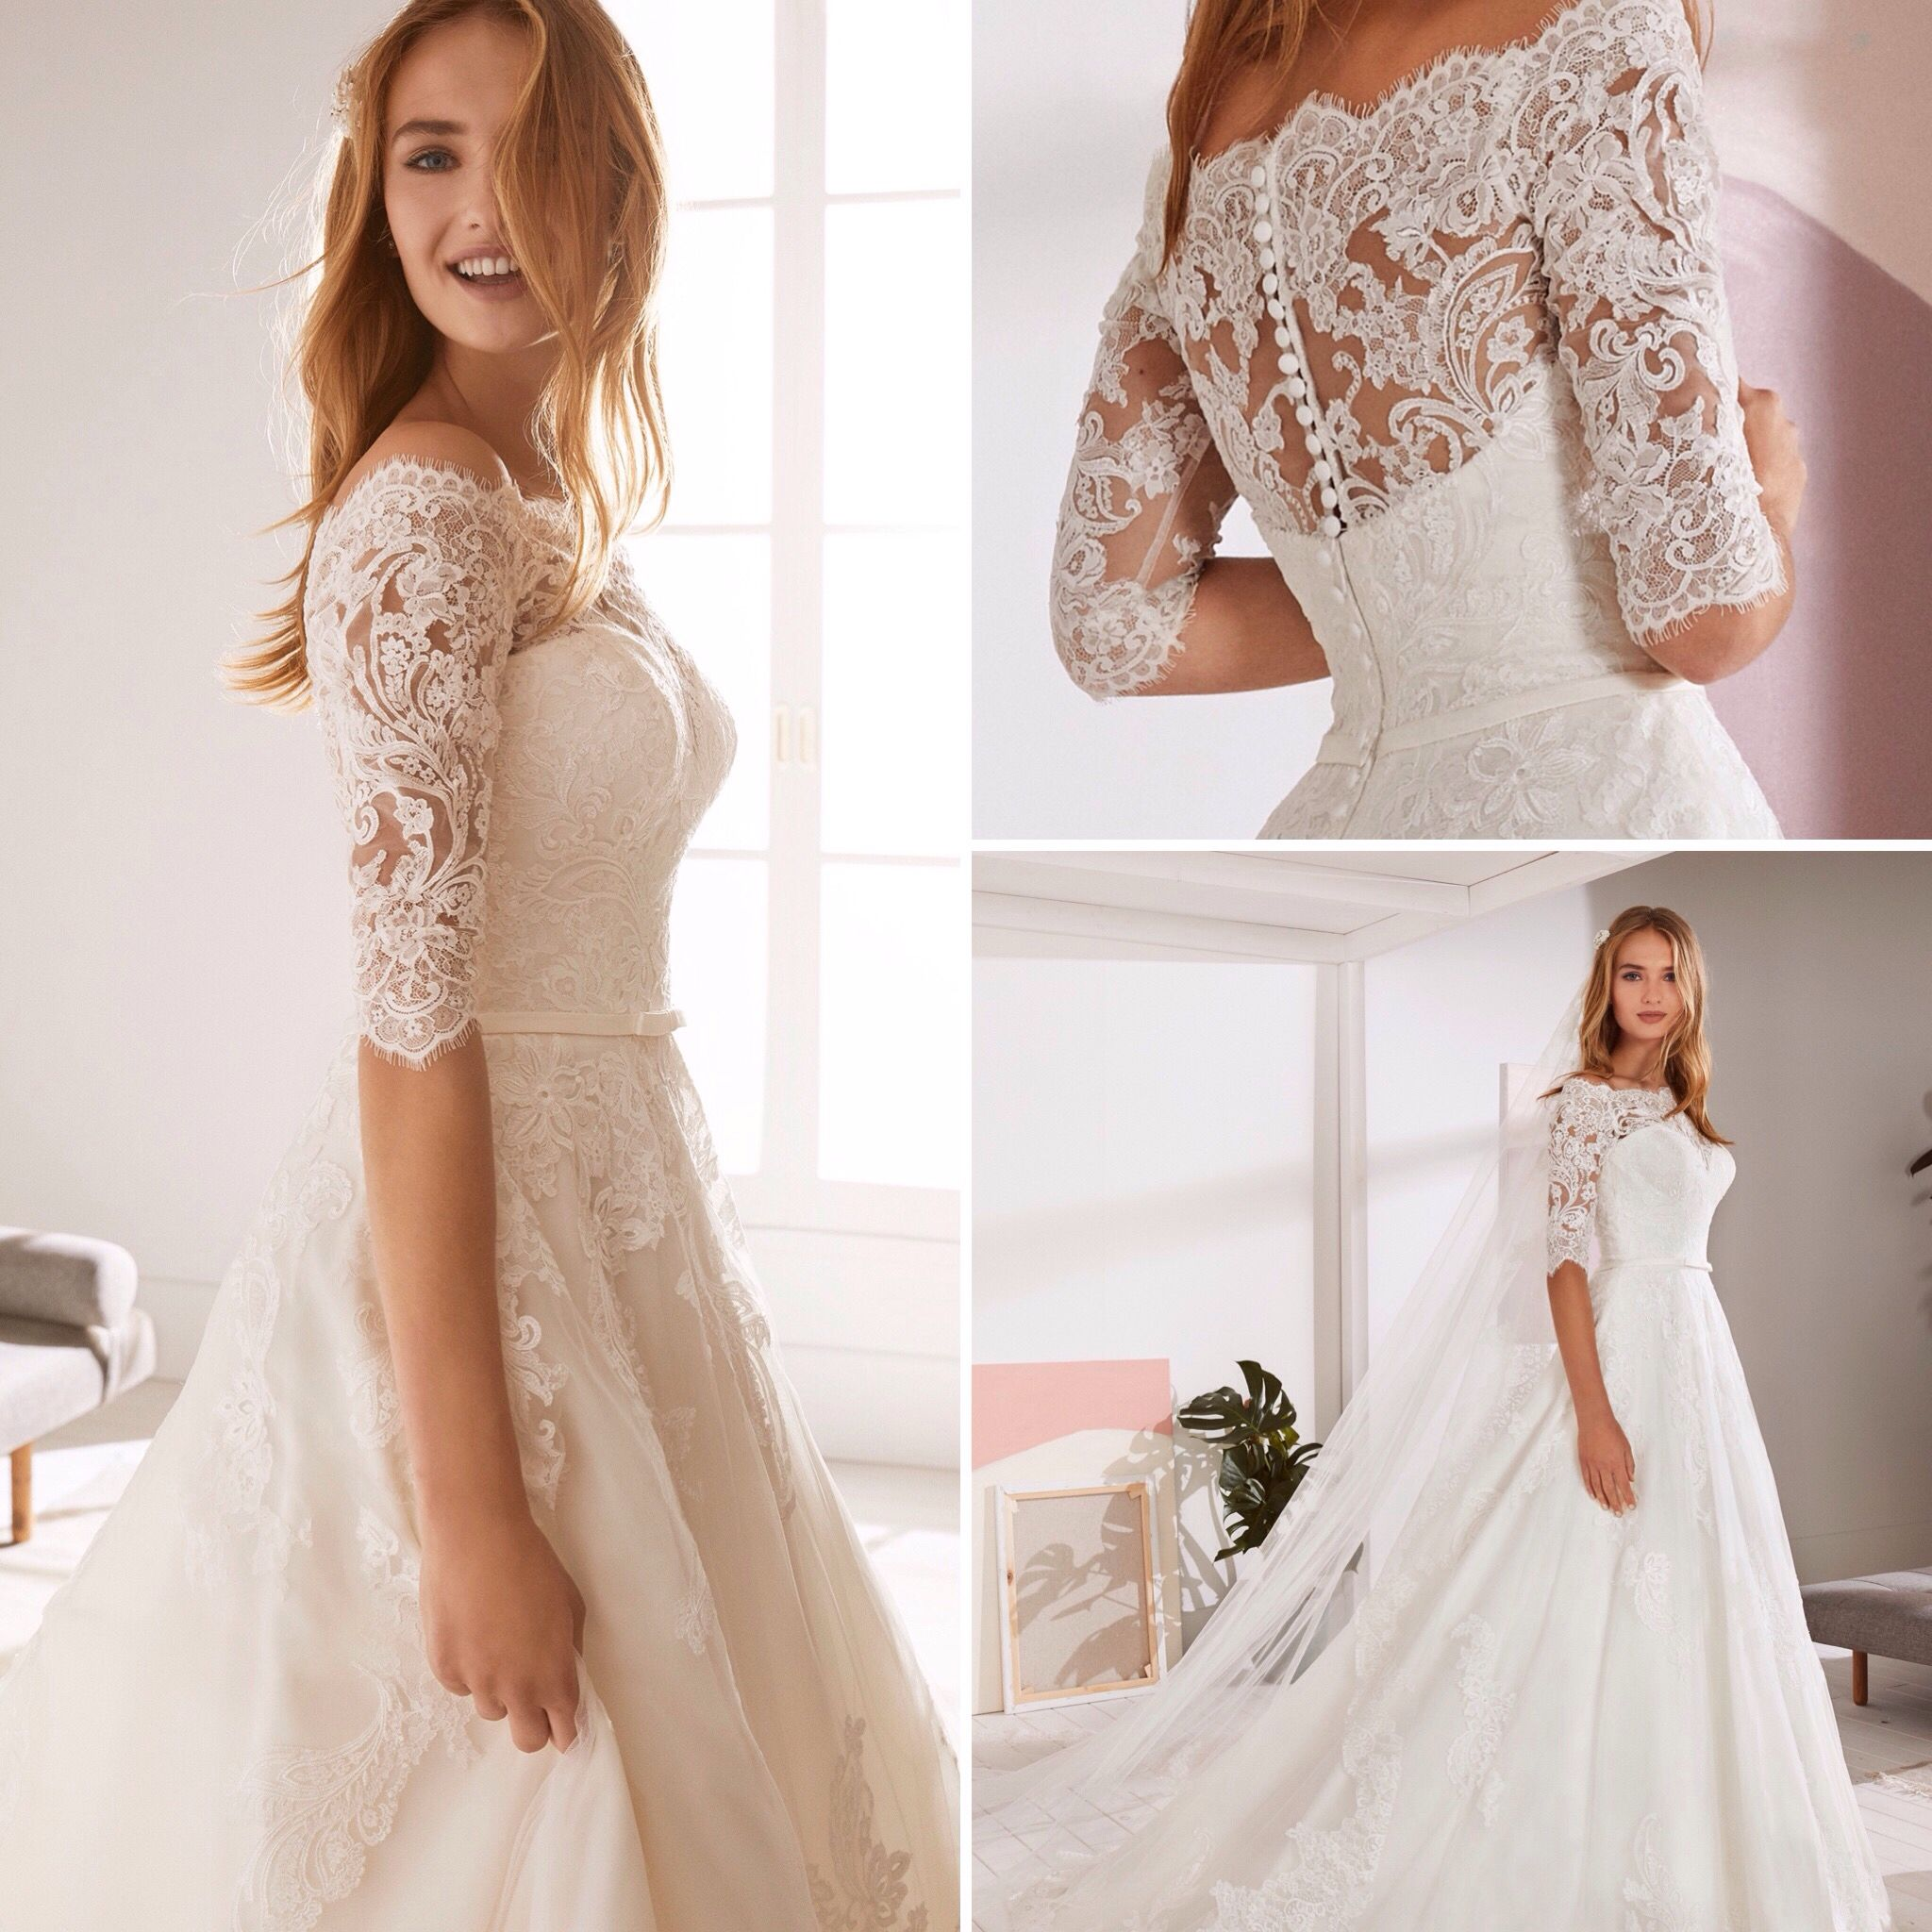 Foothills Wedding Boutique And Formalwear Wedding Formals Tuxes Long Sleeve Wedding Dress Lace Lace Wedding Dress With Sleeves Wedding Dress Sleeves [ 2048 x 2048 Pixel ]